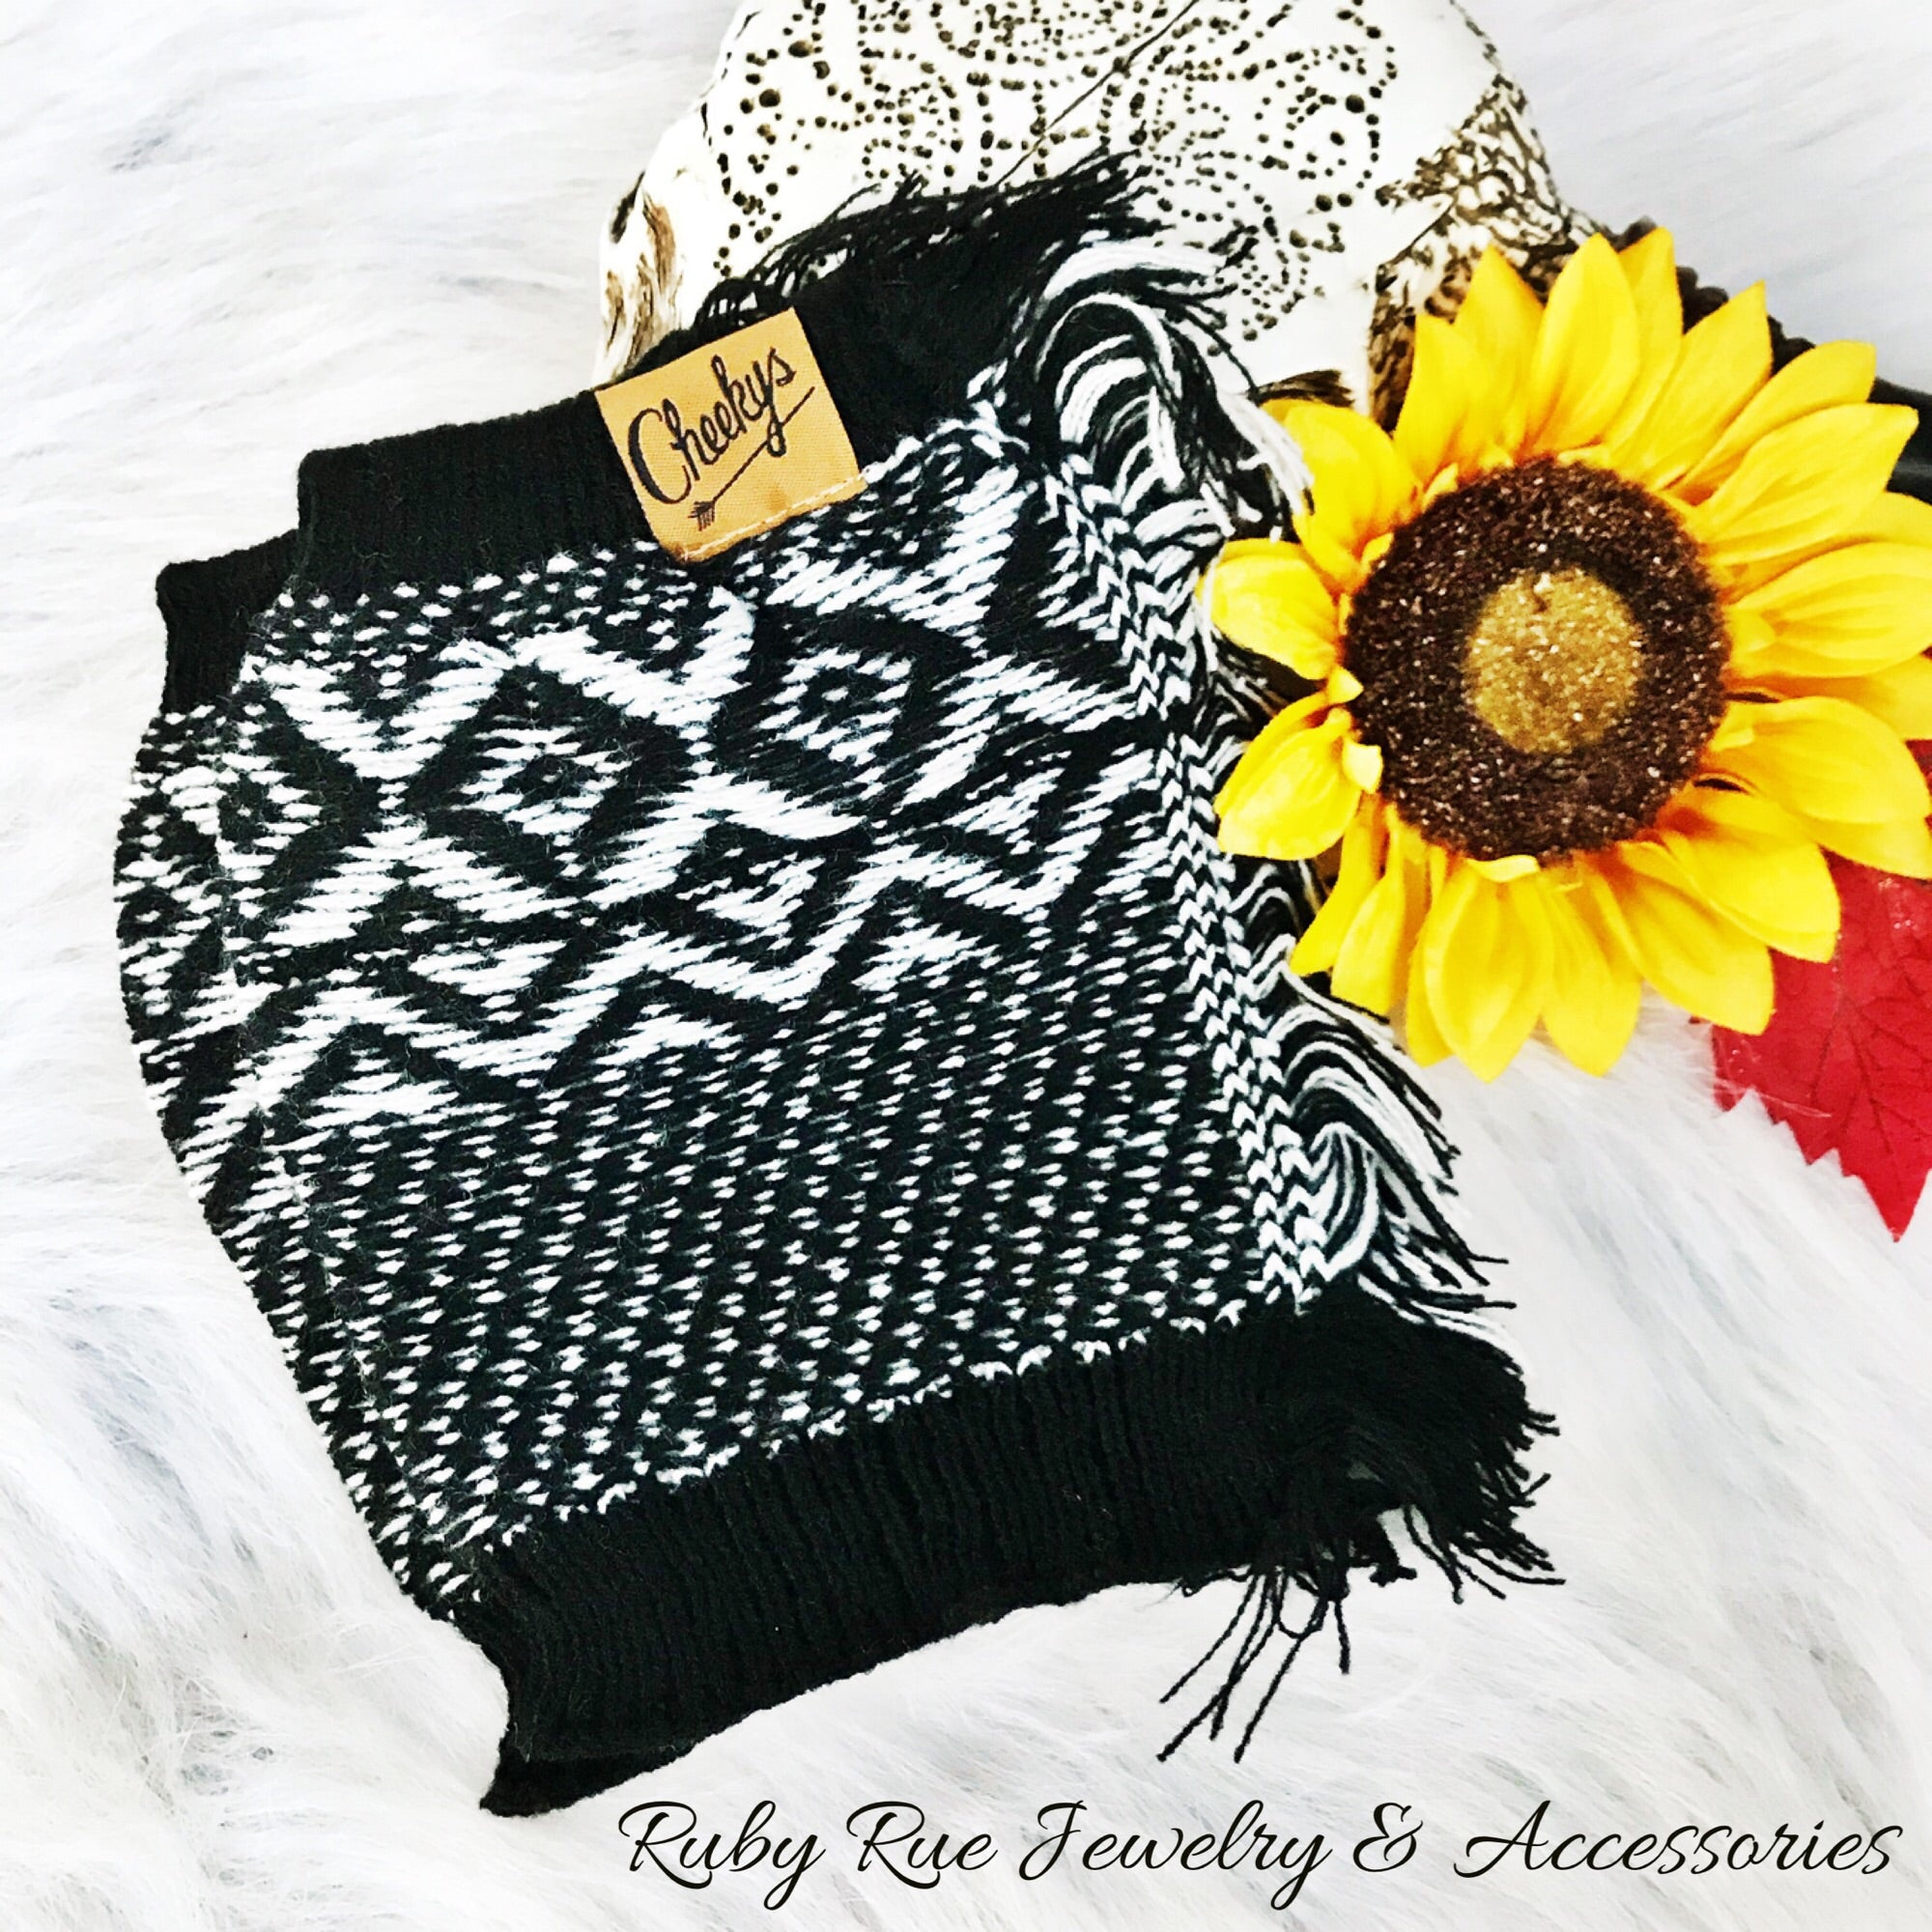 Cheeky's Black Boot Socks - Ruby Rue Jewelry & Accessories